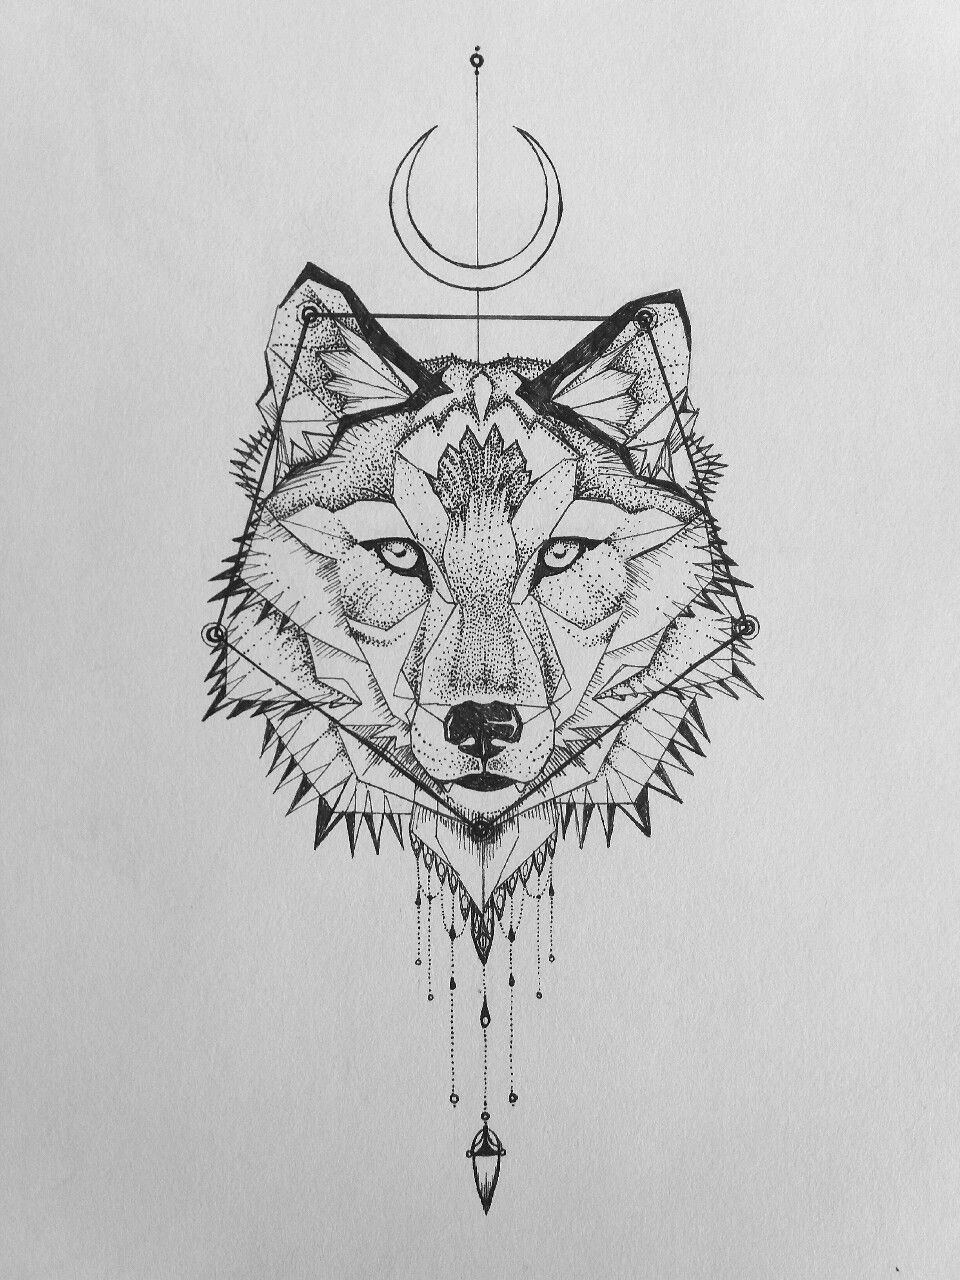 Geometric wolf tattoo. | Tattoos | Tattoos, Geometric wolf ...